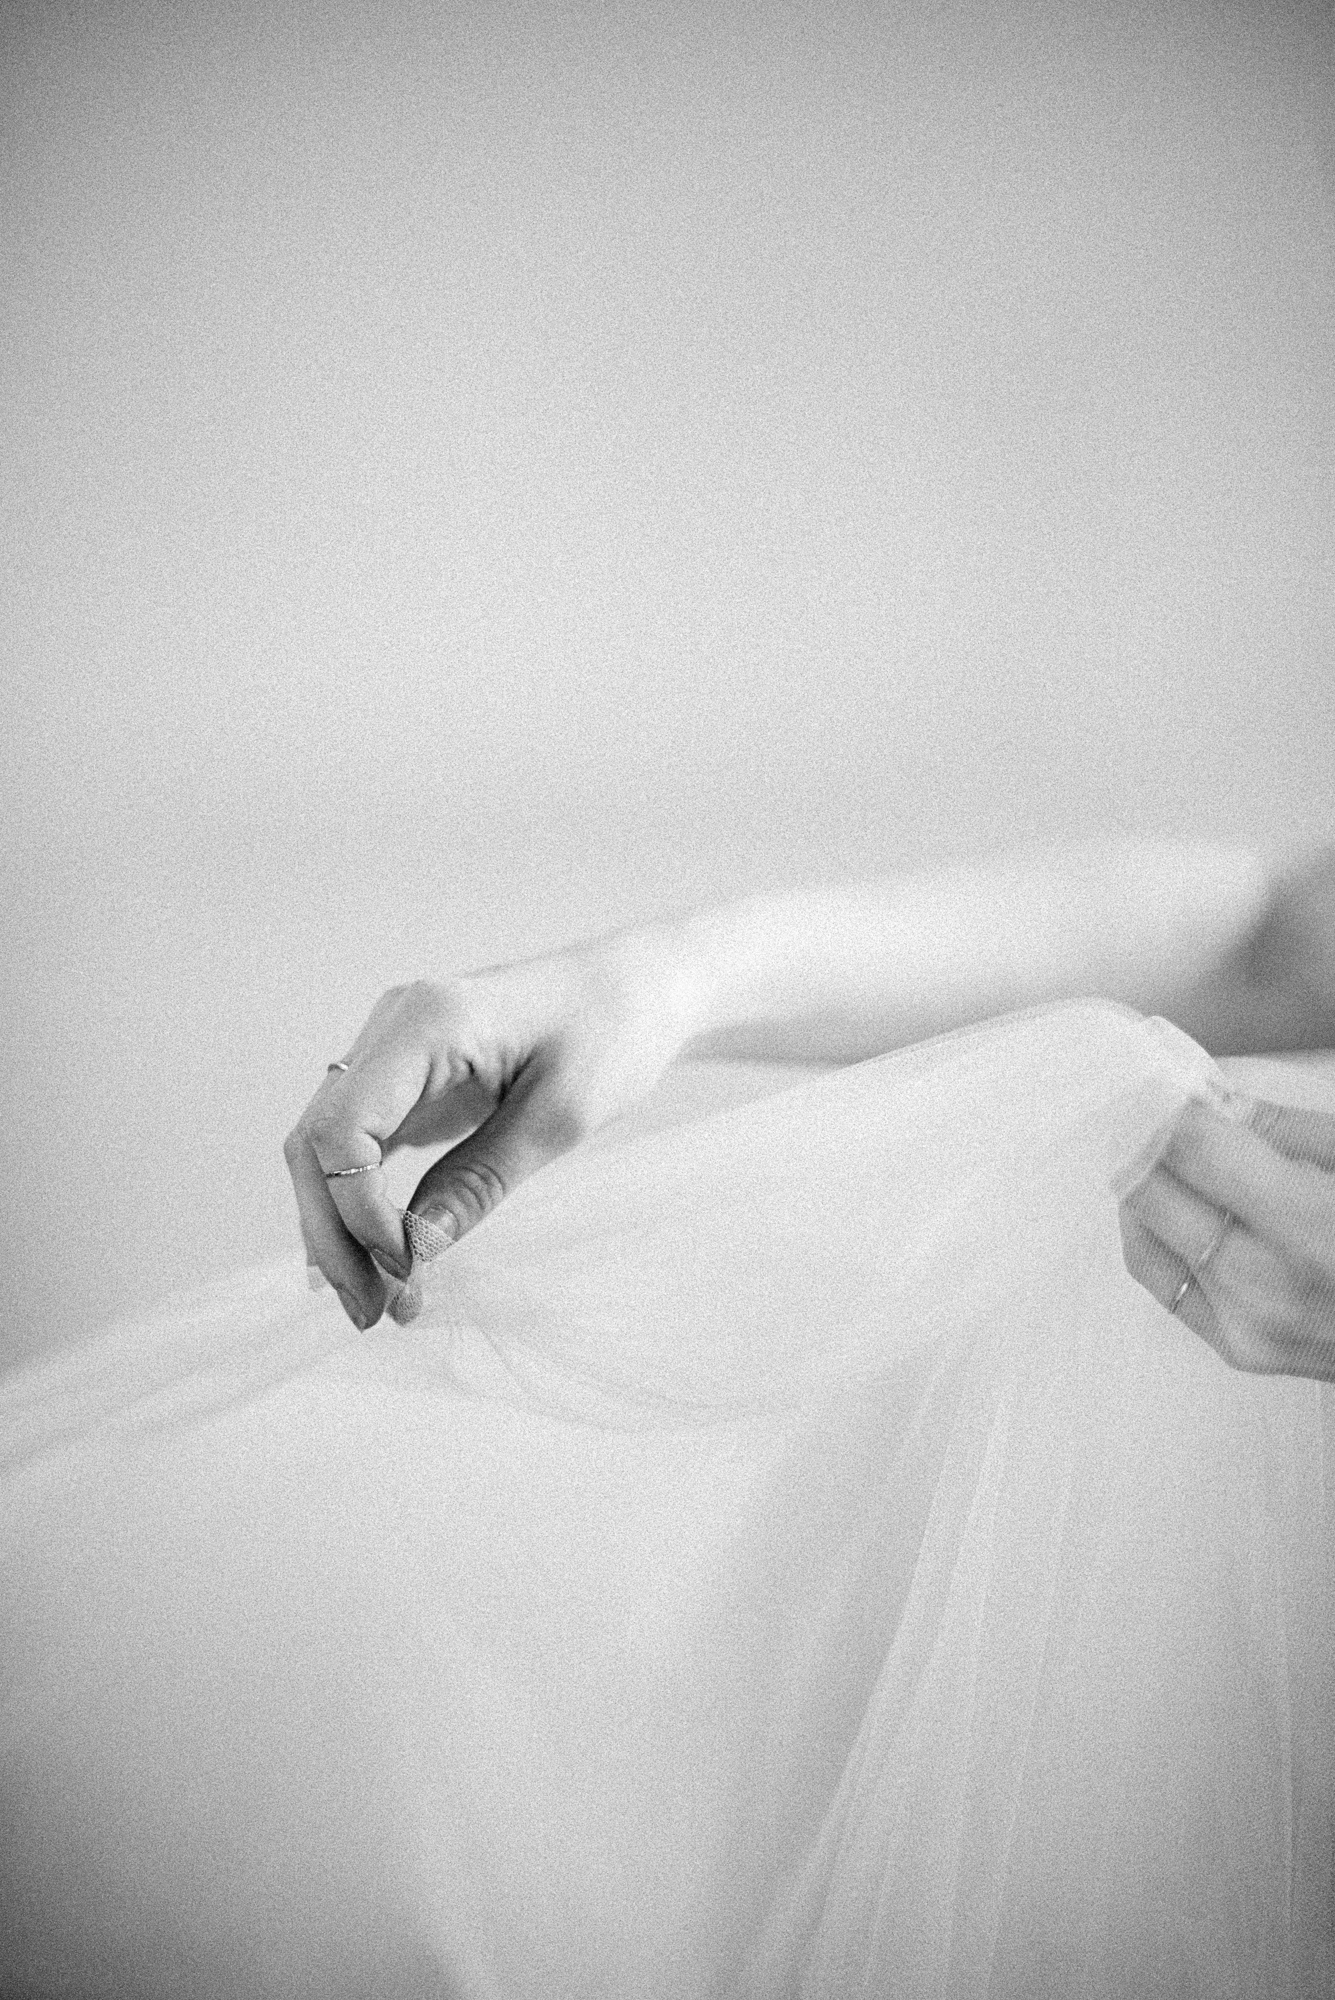 Alexandra-Elise-Photography-Ali-Reed-New-York-Film-Wedding-Photographer-SIBO-Designs-Hands-021